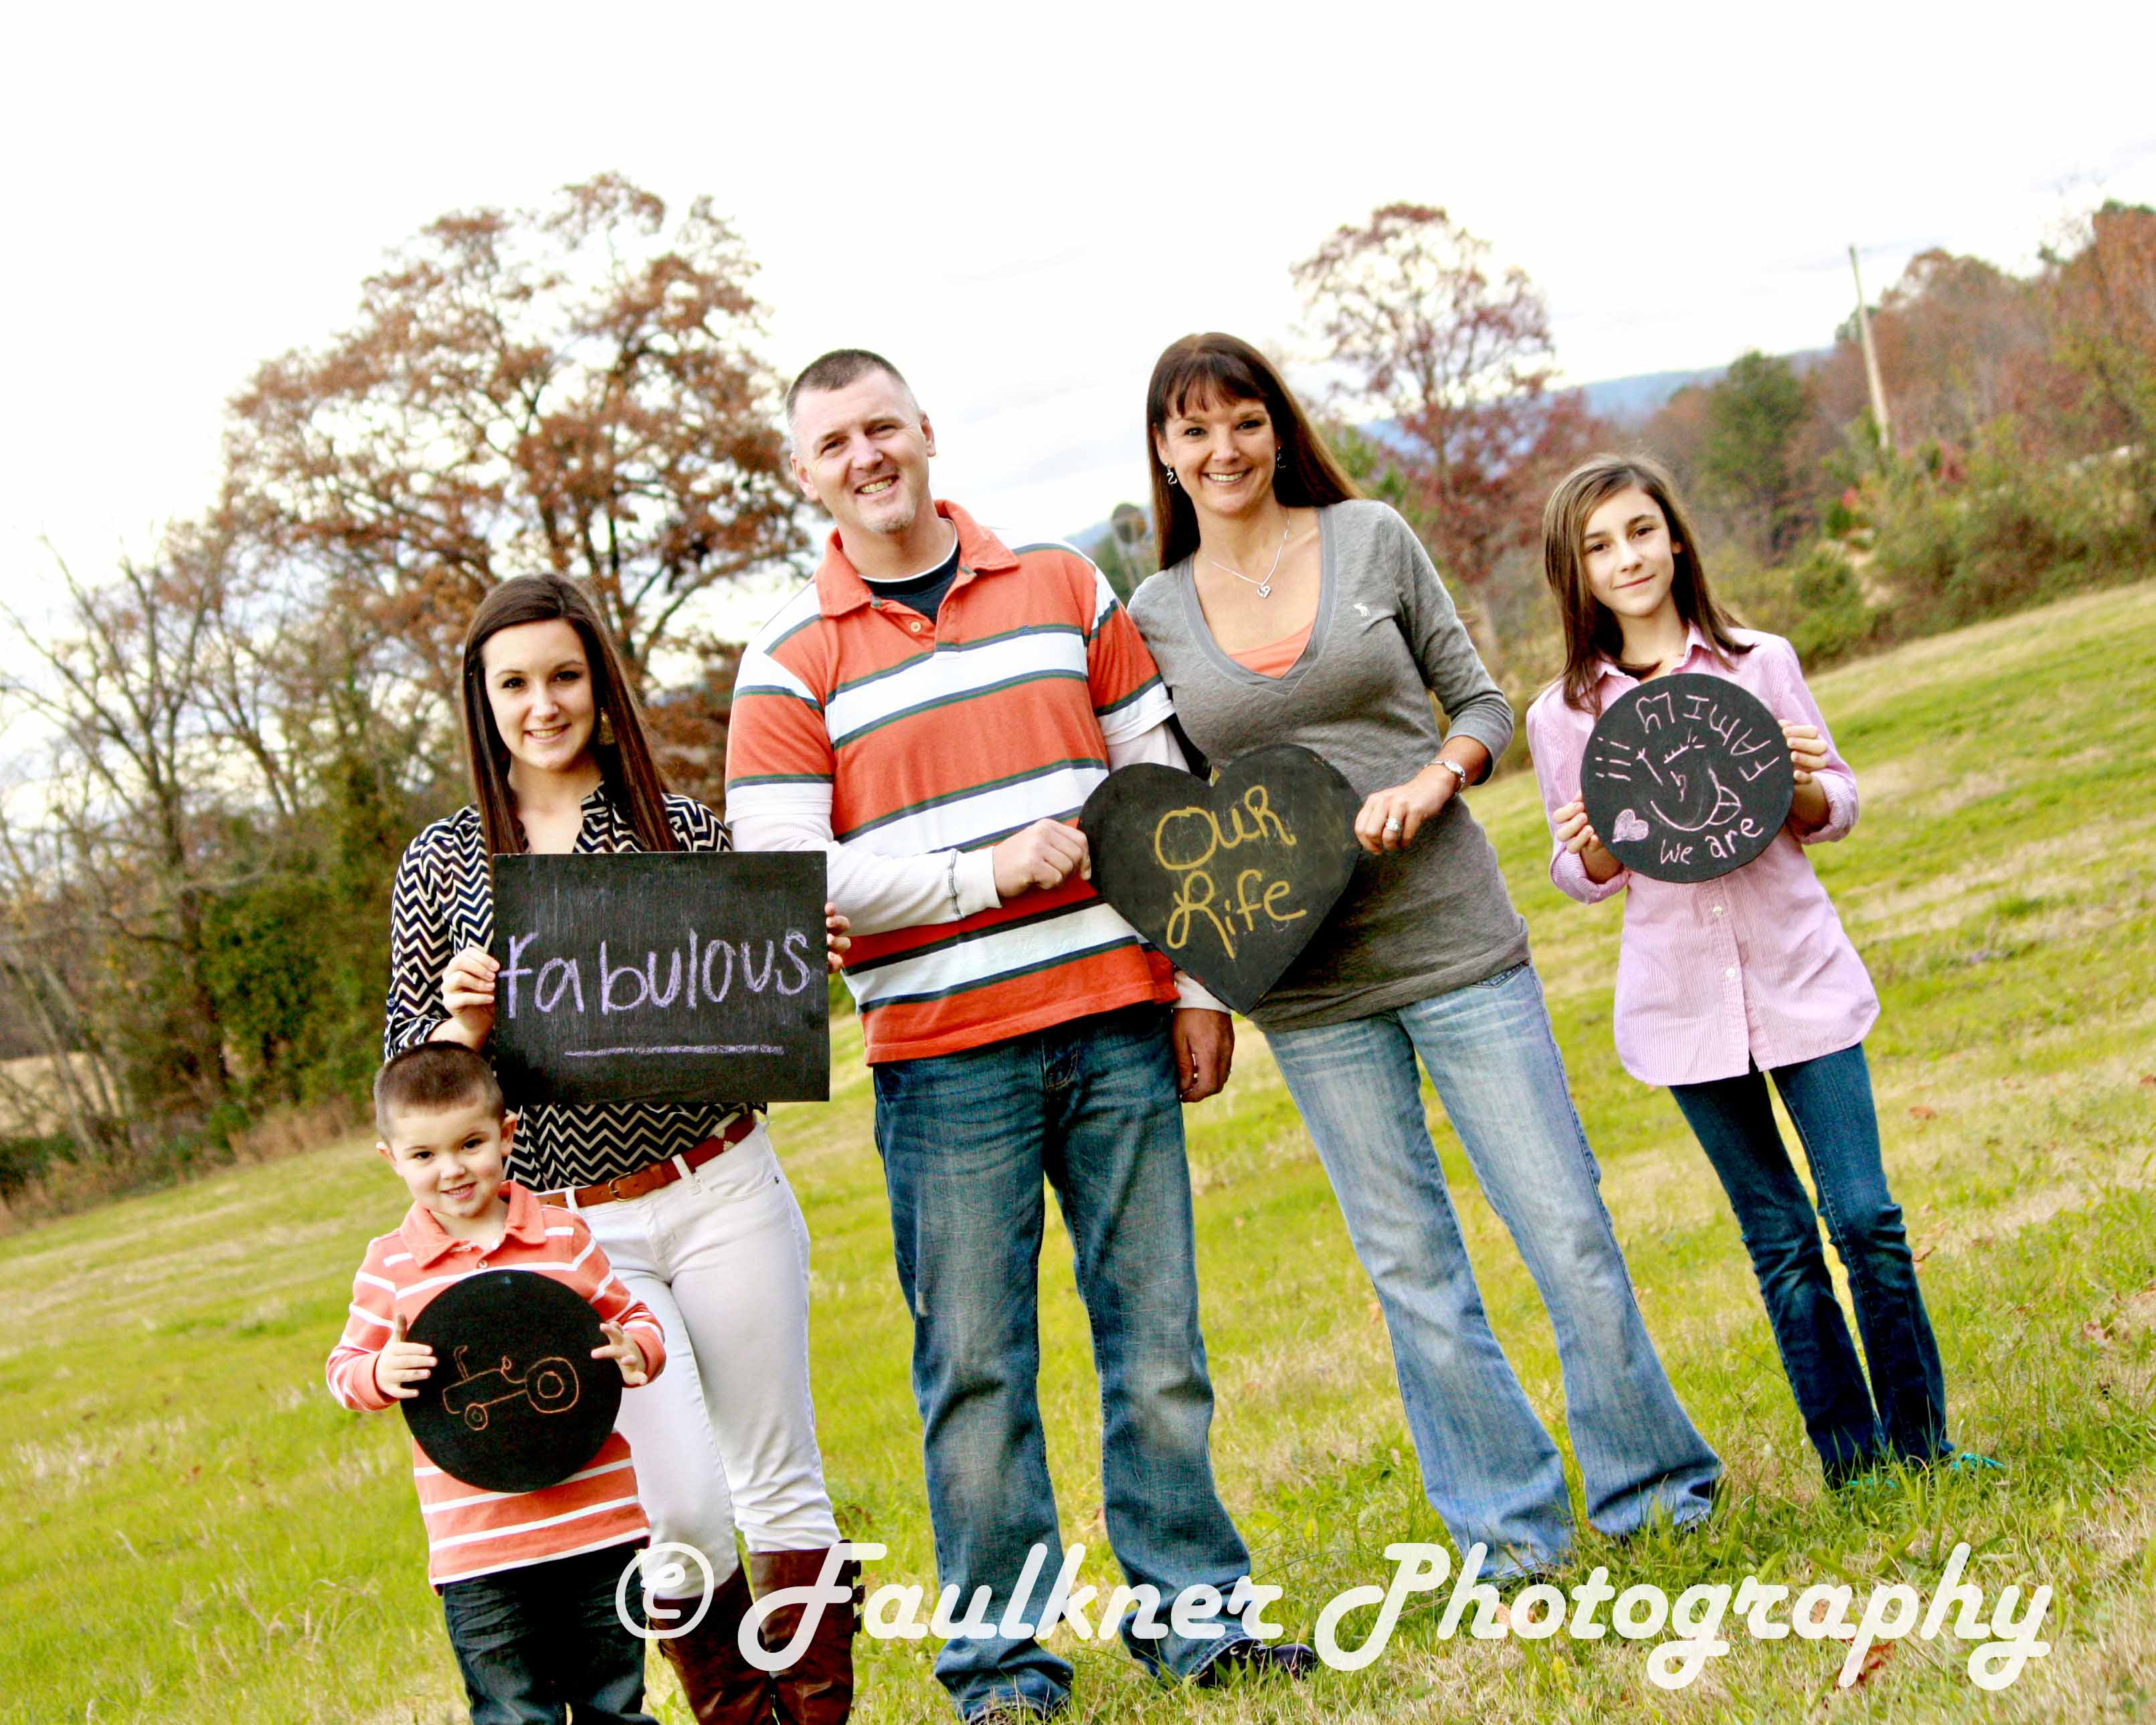 Fun And Festive Fall Family Portrait Sessions